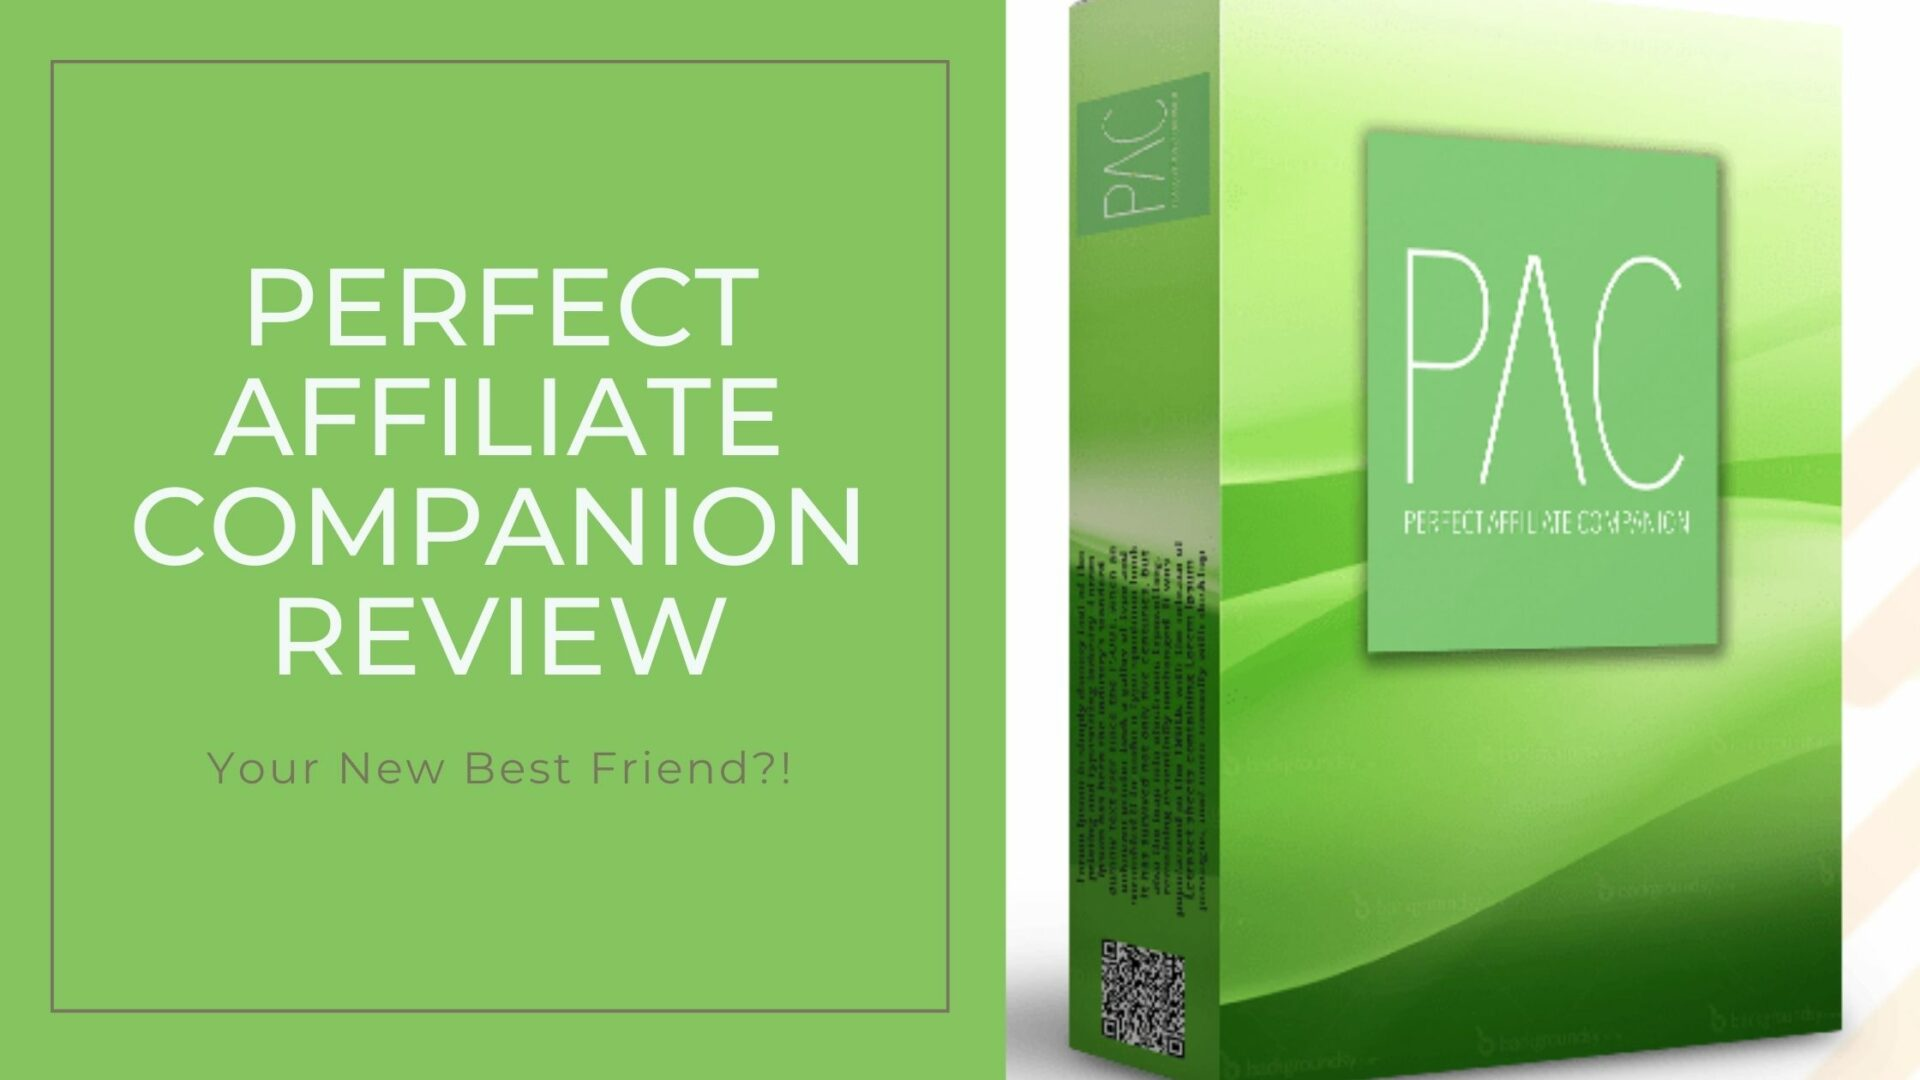 Perfect Affiliate Companion Review